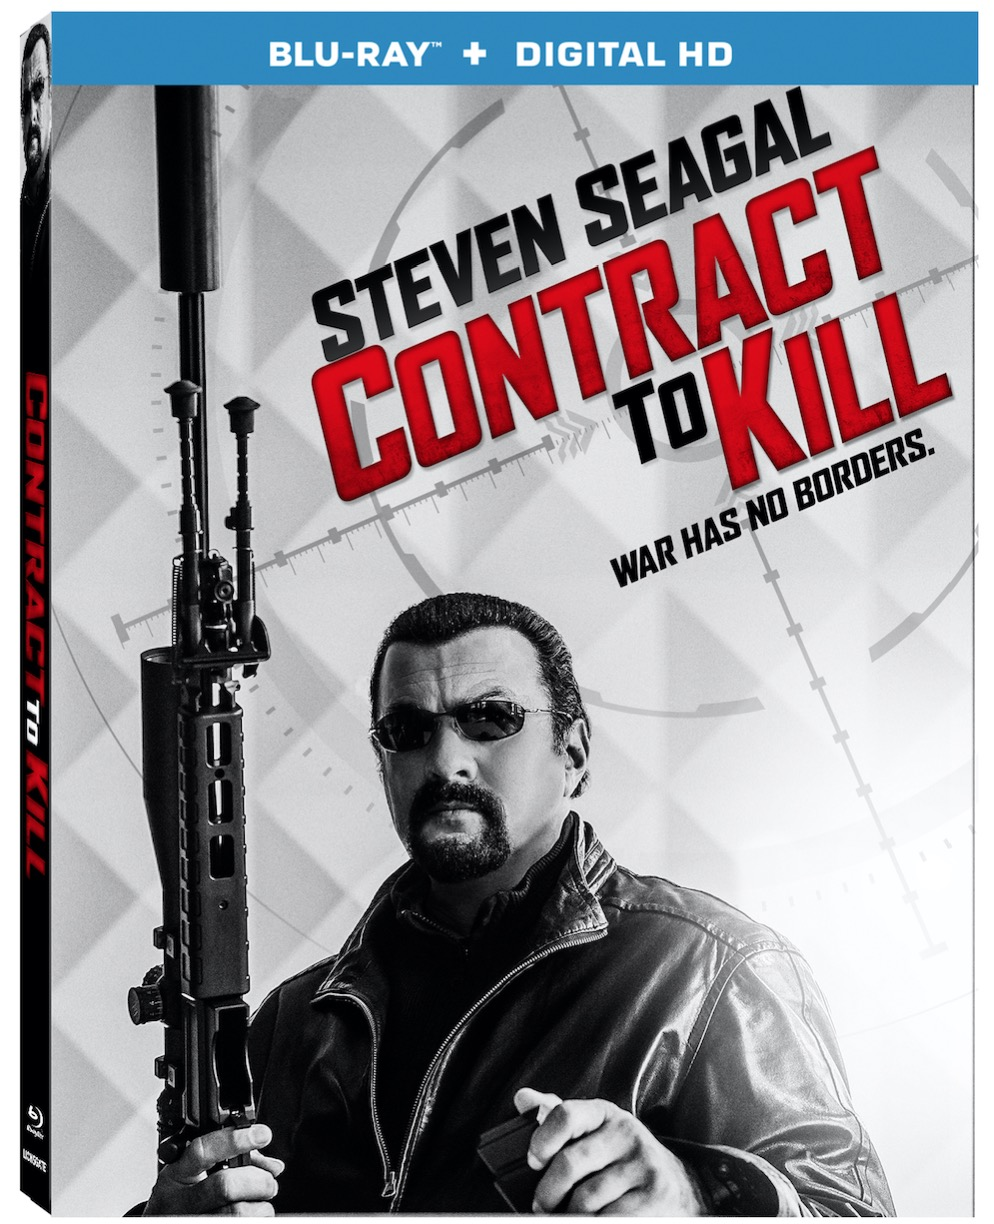 Contract To Kill Blu-ray Review